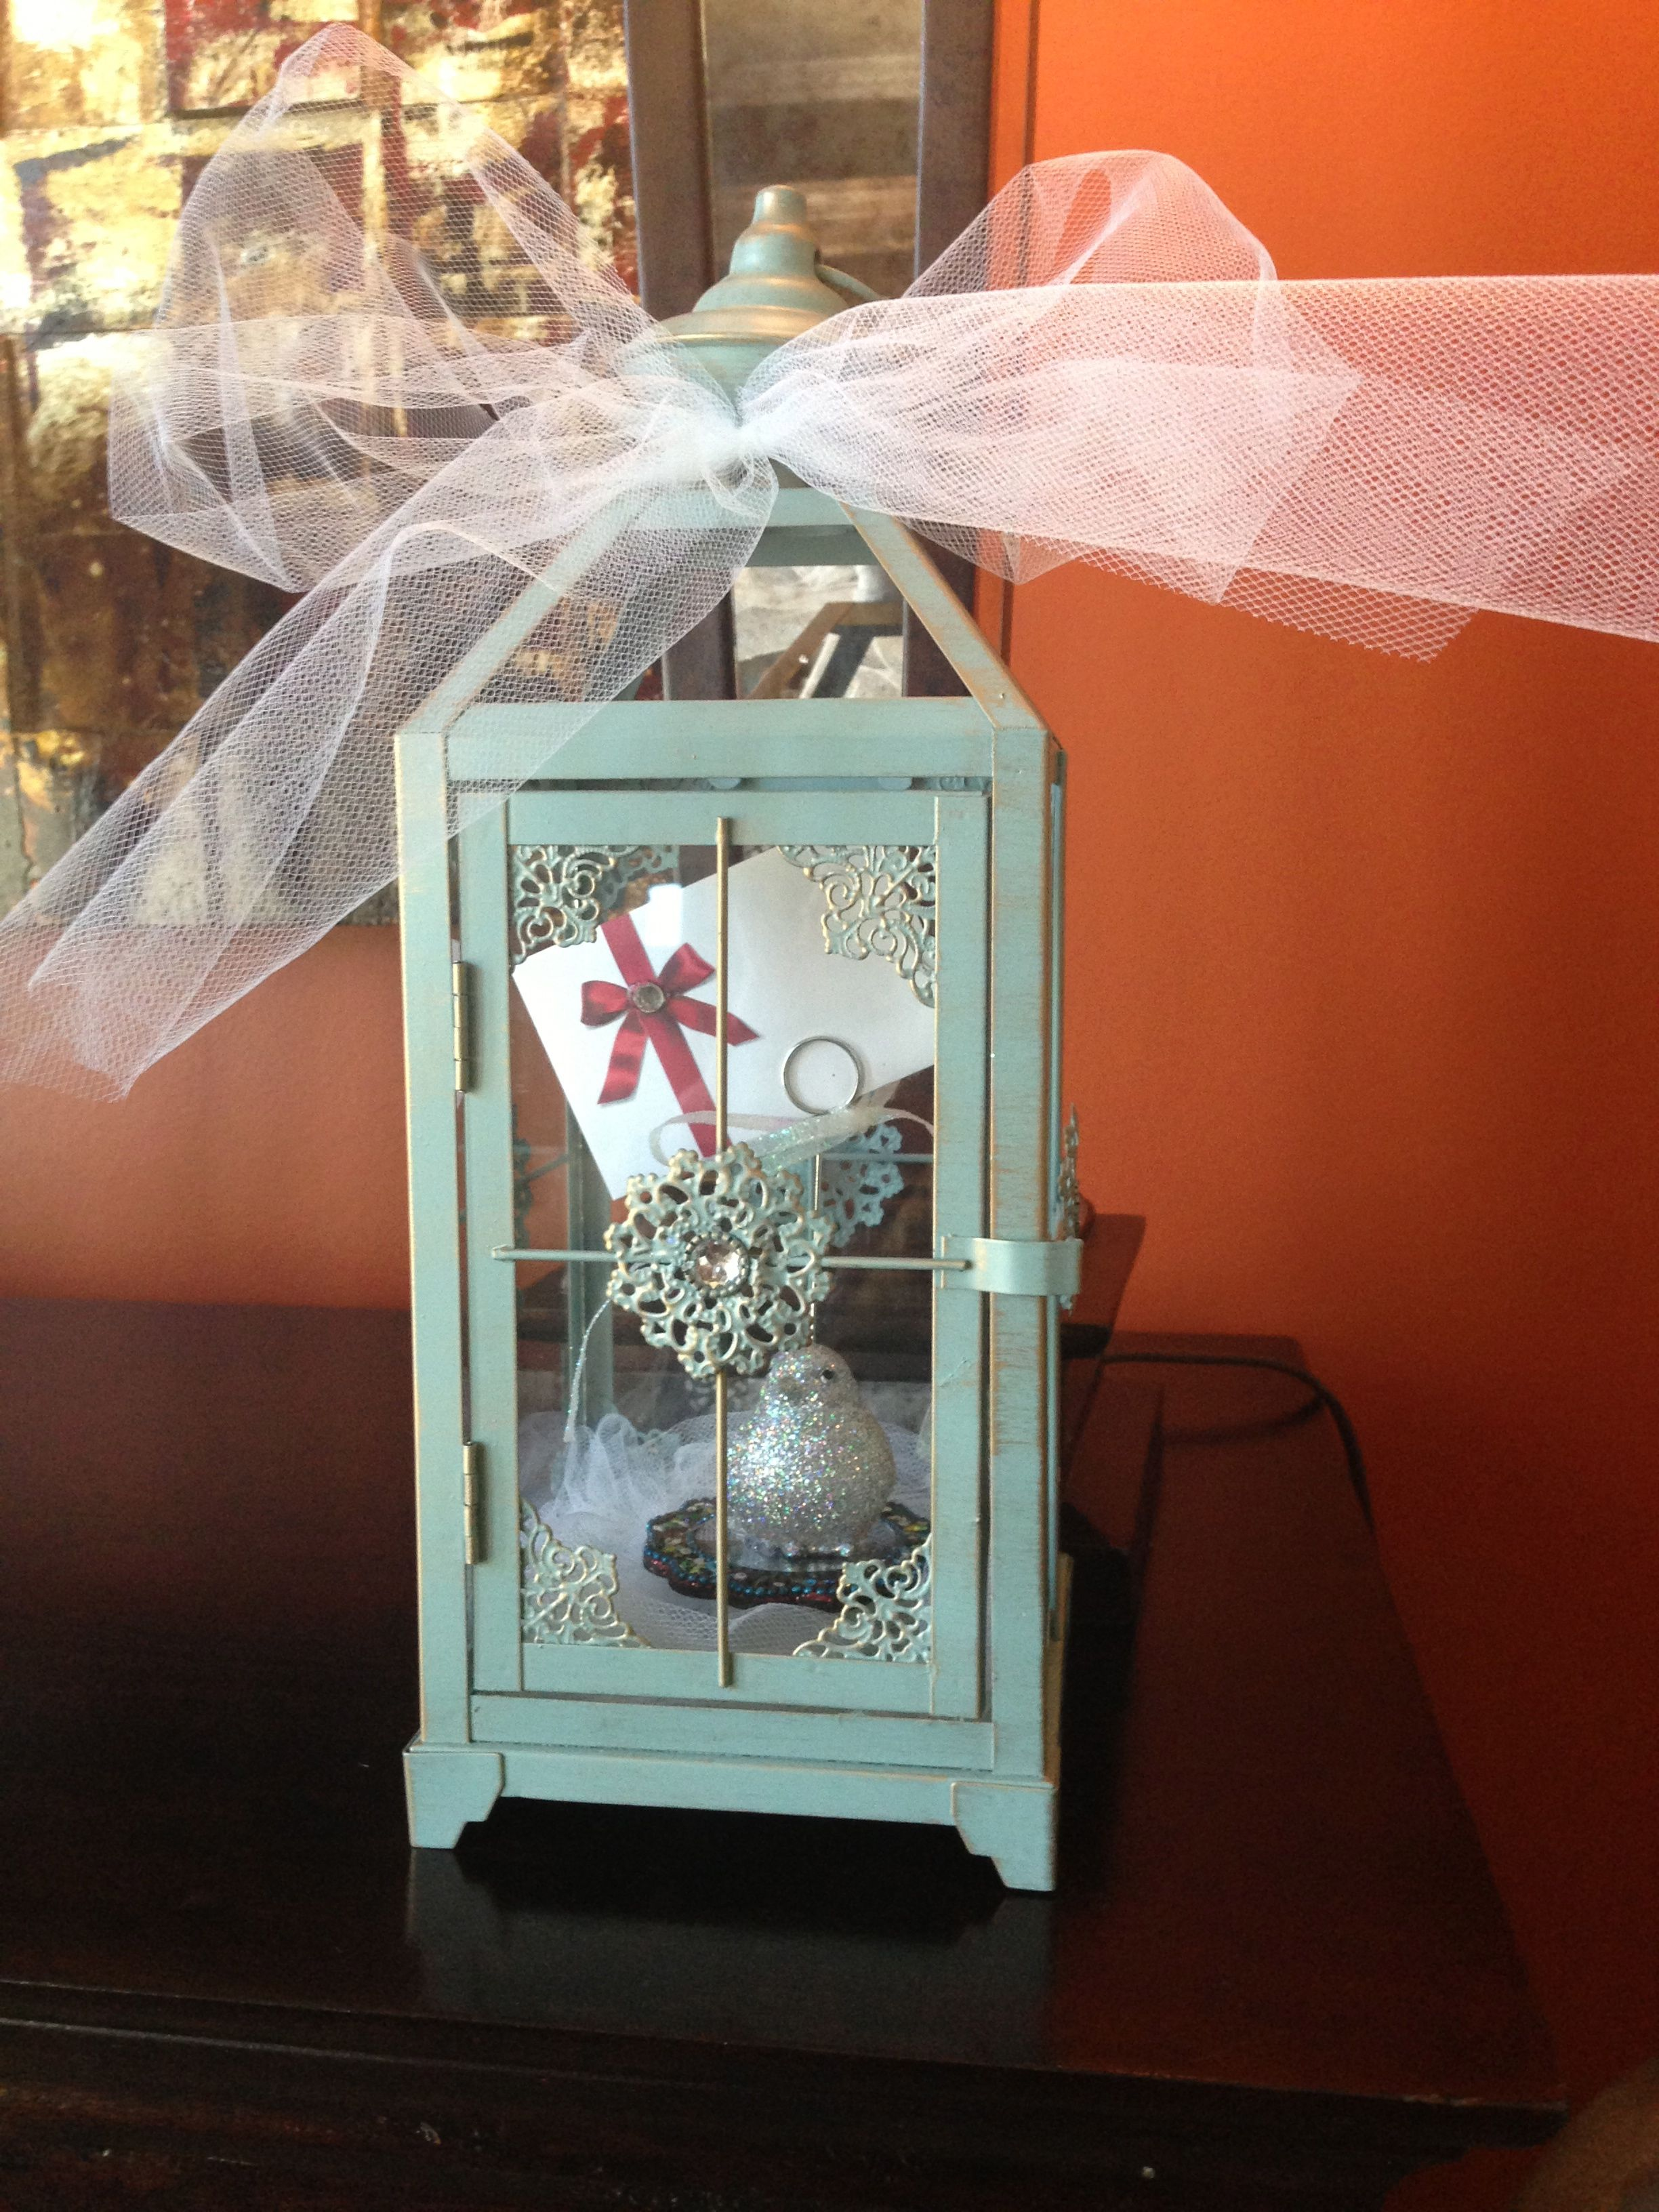 Cute And Creative Way To Give A Gift Card This Particular One I Made Was For A Bridal Shower I Purc Lantern Gift Gift Card Presentation Wedding Shower Gift